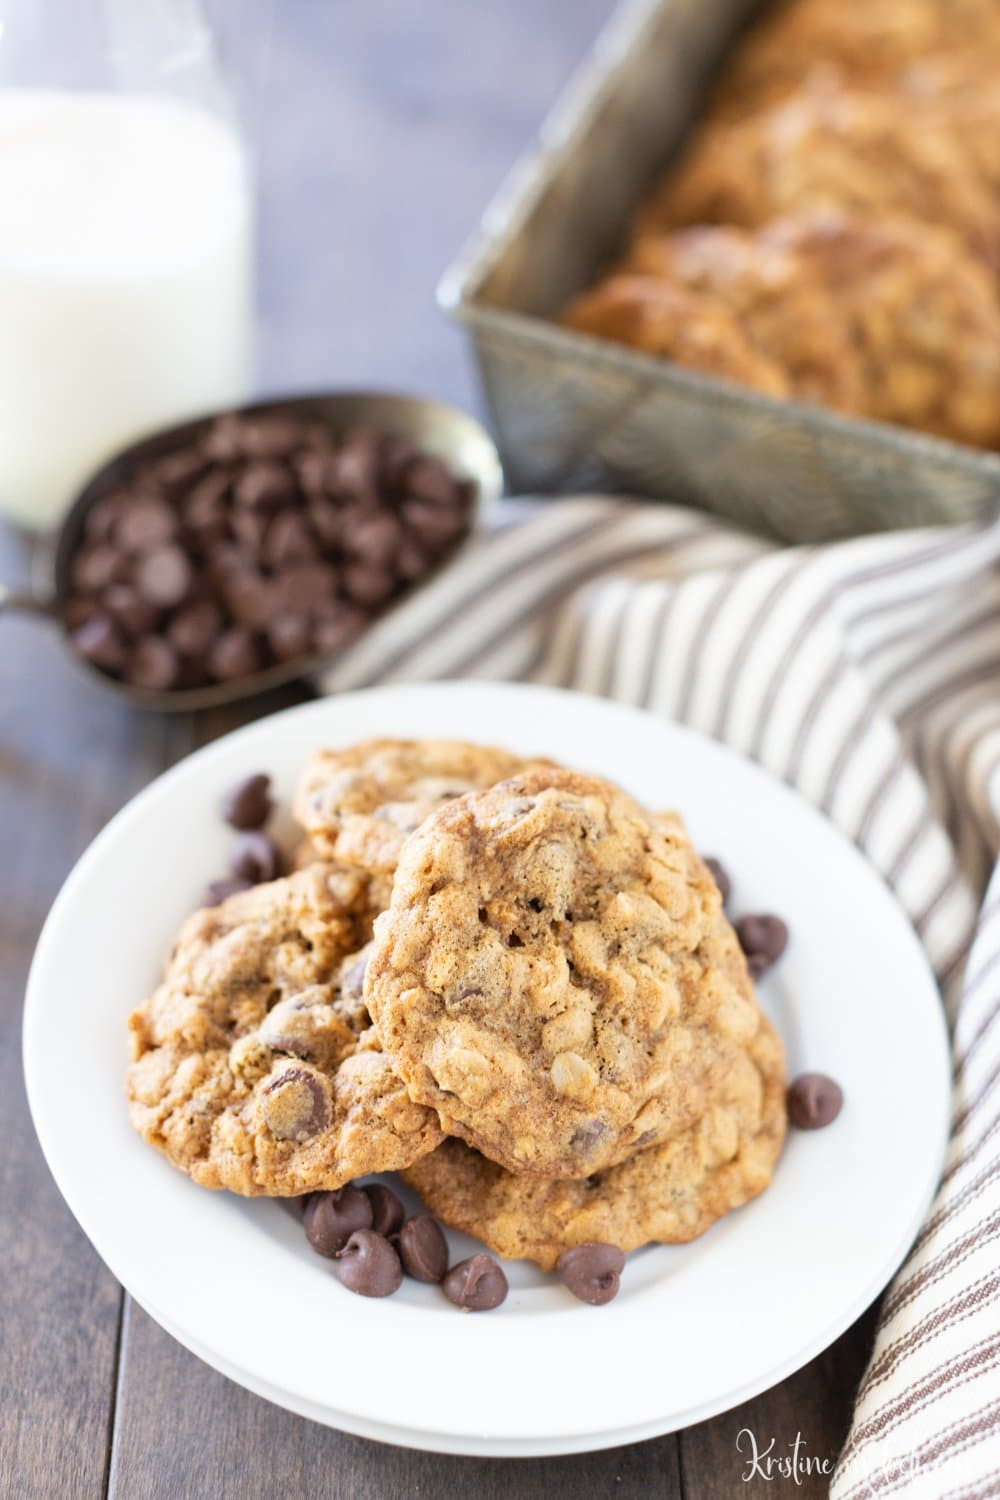 These are the perfect chewy oatmeal chocolate chip cookies!